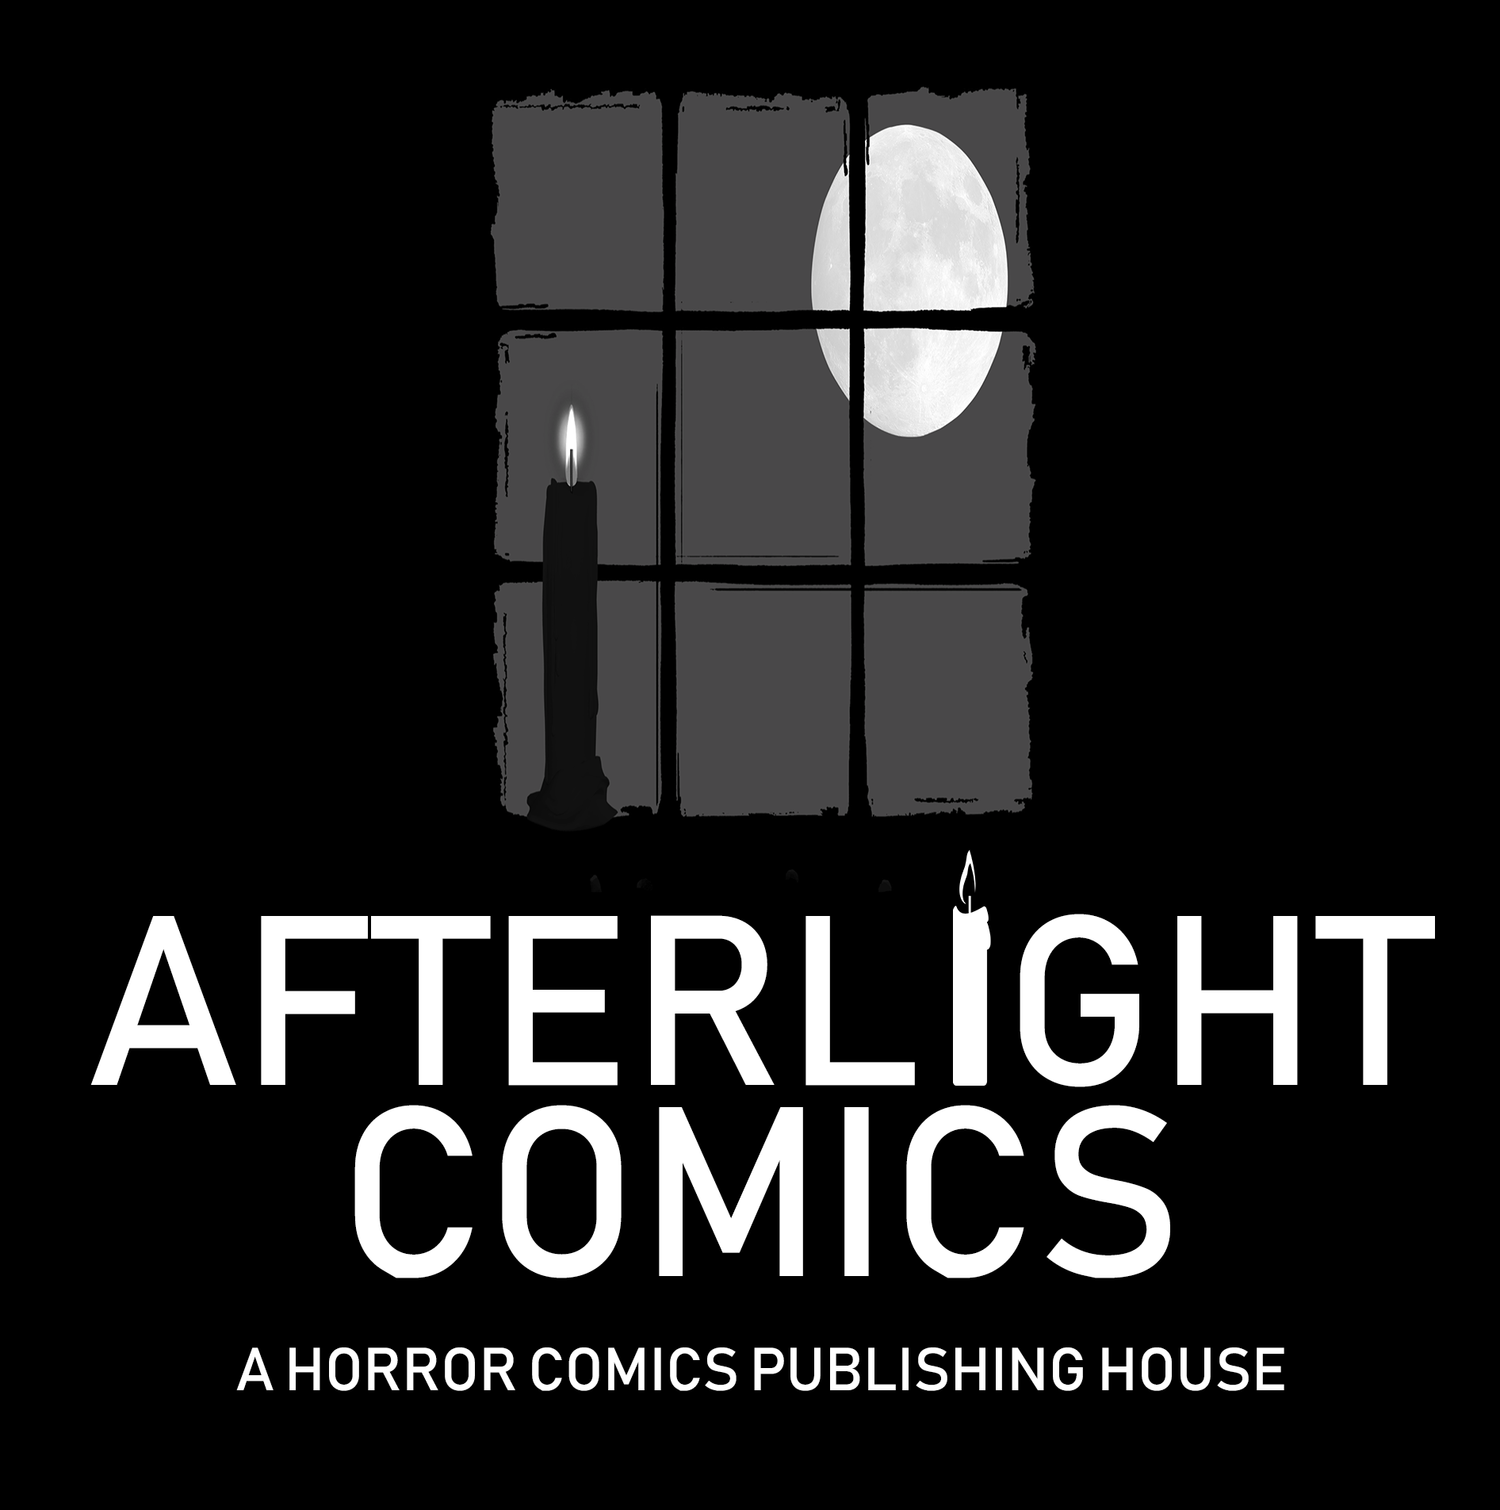 Afterlight comics